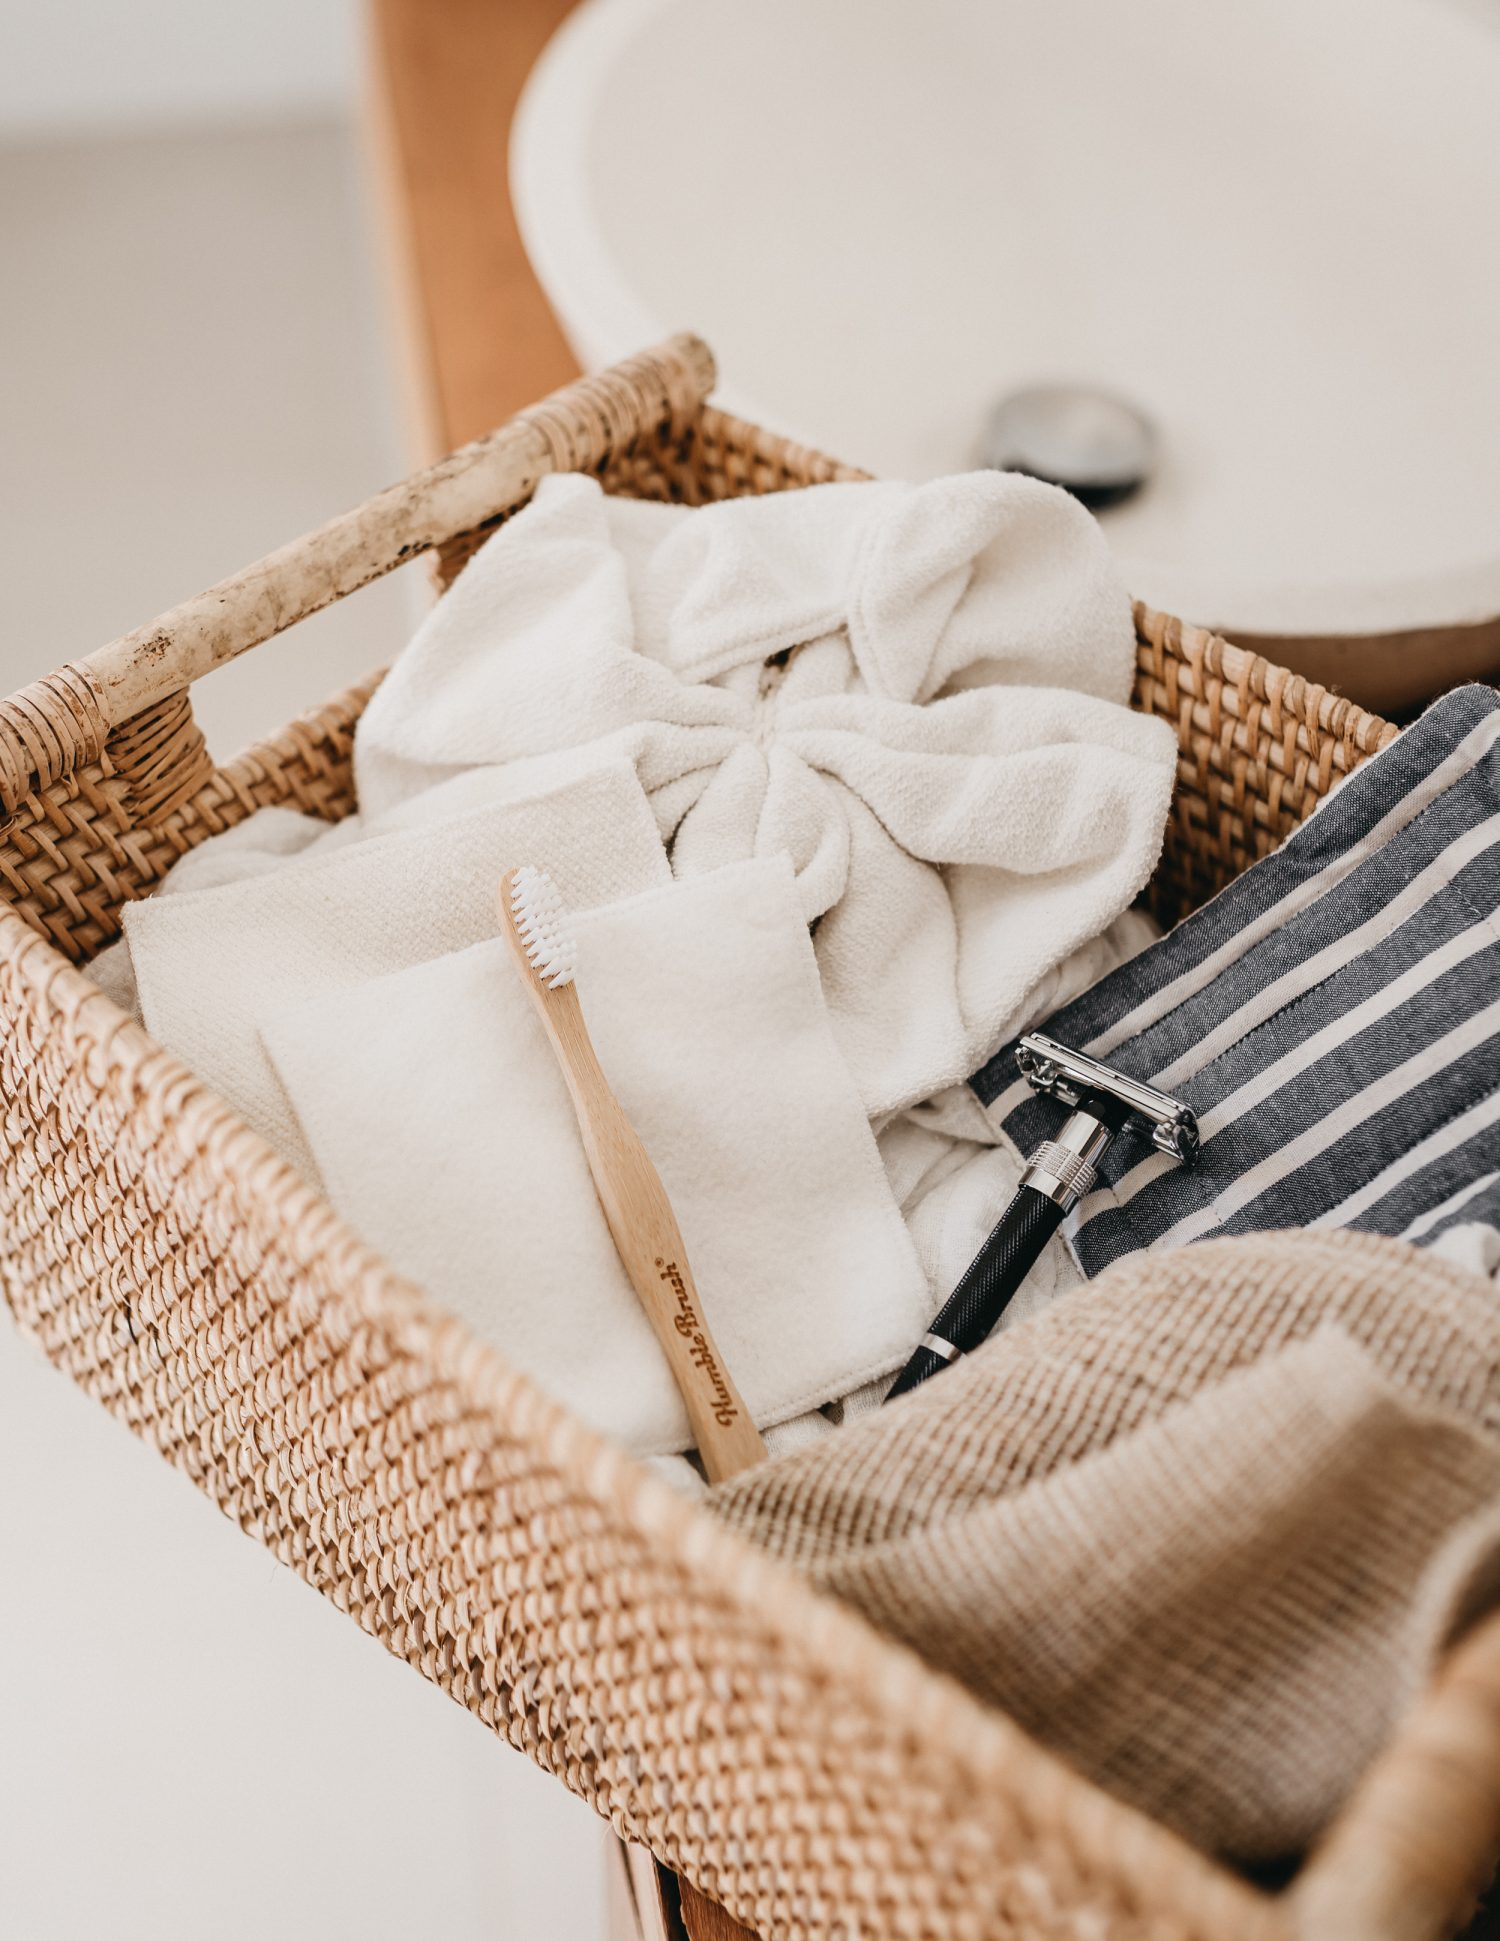 Zero Waste Green Eco Environmentally Friendly Gifts Kits Hampers - Nowhere & Everywhere Sustainable Plastic Free Zero Waste Gift Guide - Bathroom